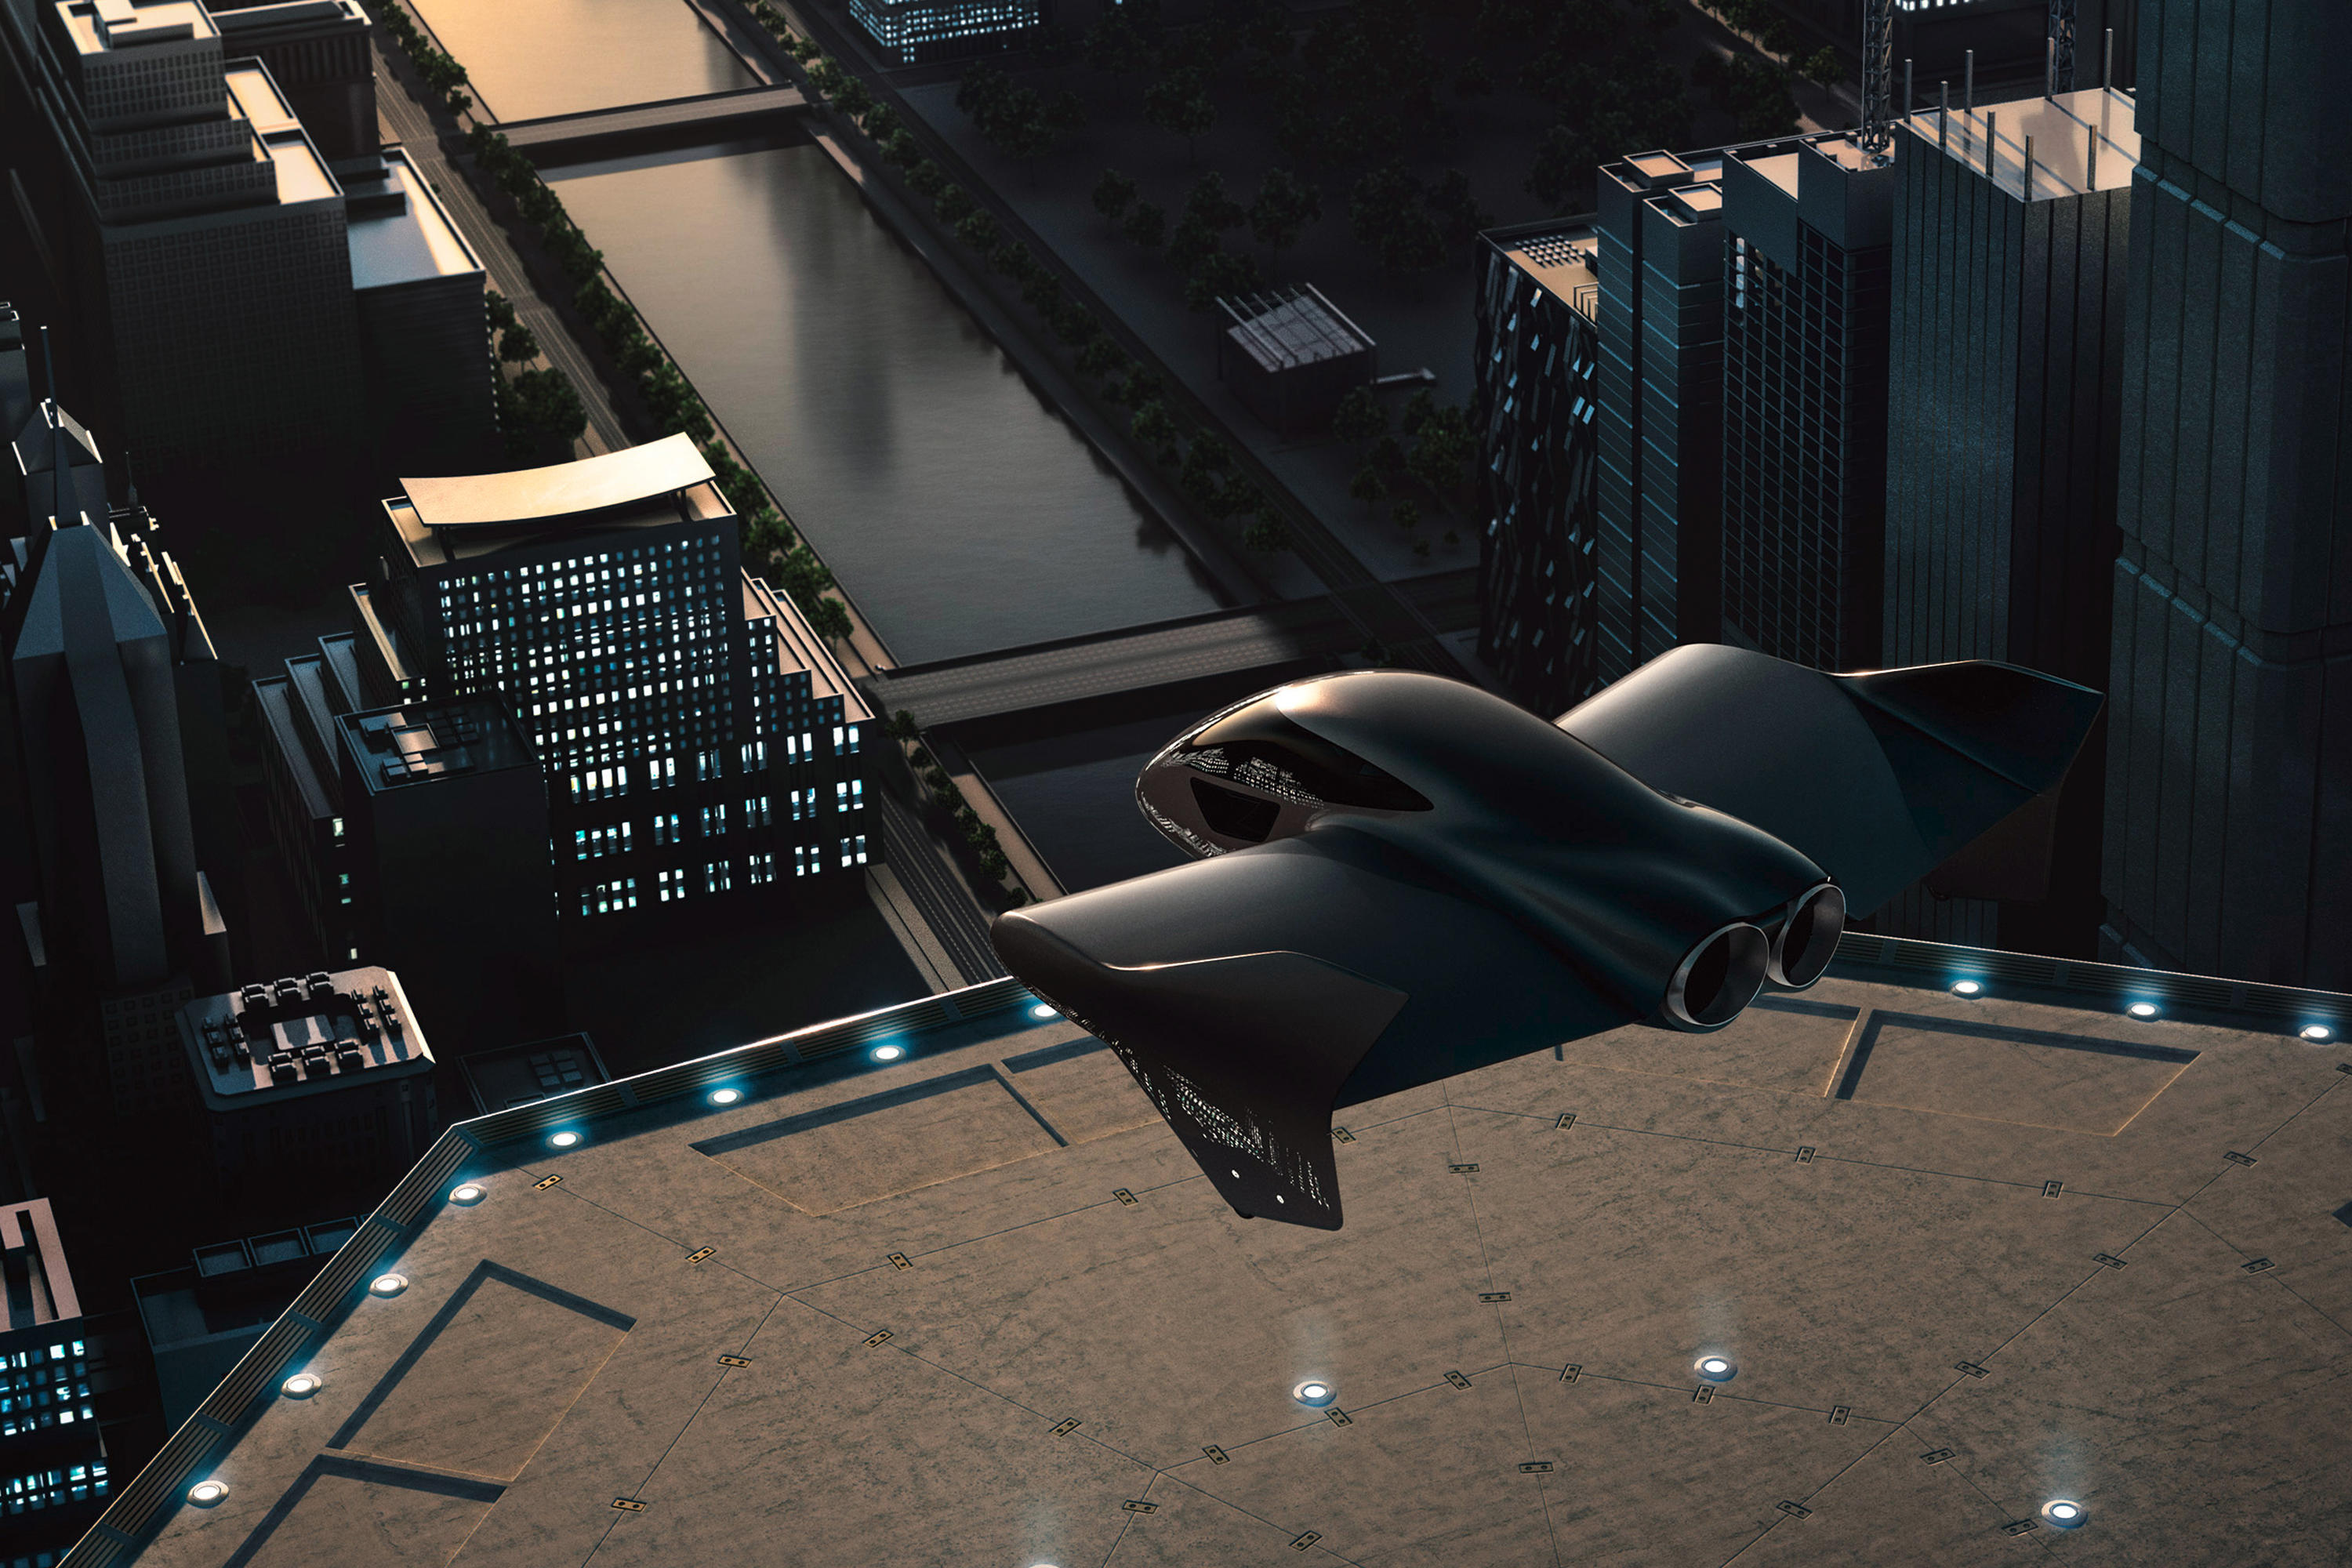 Porsche rendering for flying taxi